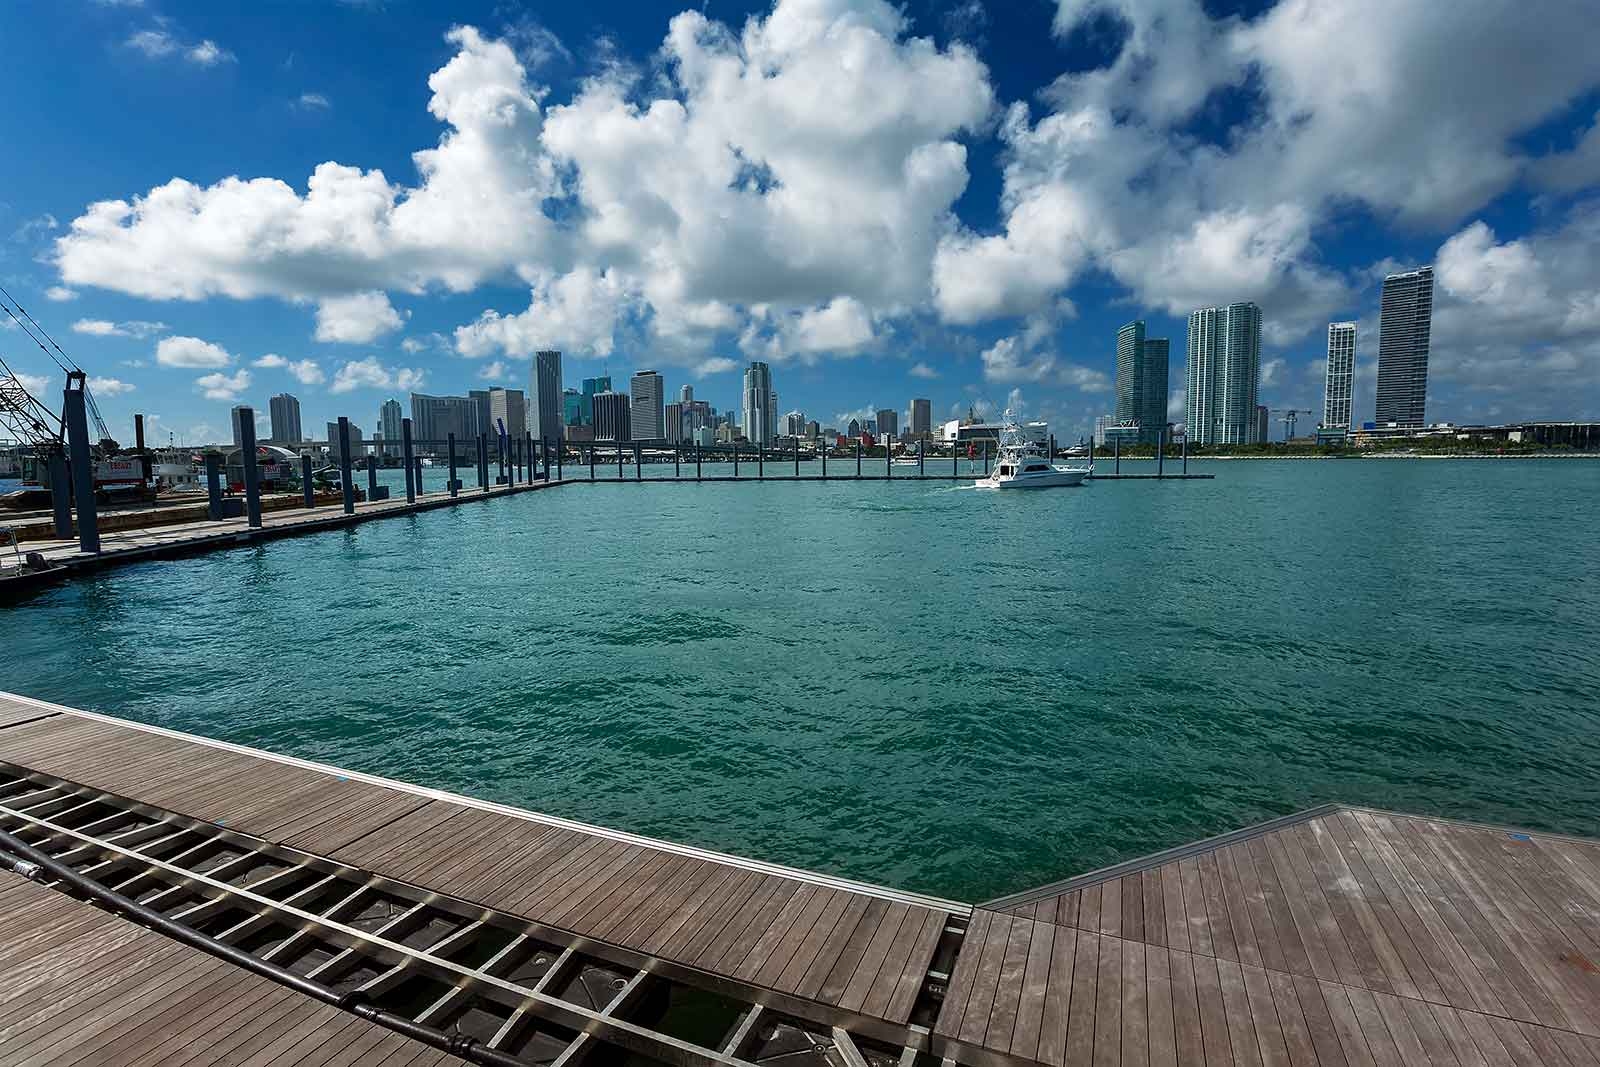 You have an amazing view of Miami's skyline from Watson Island.